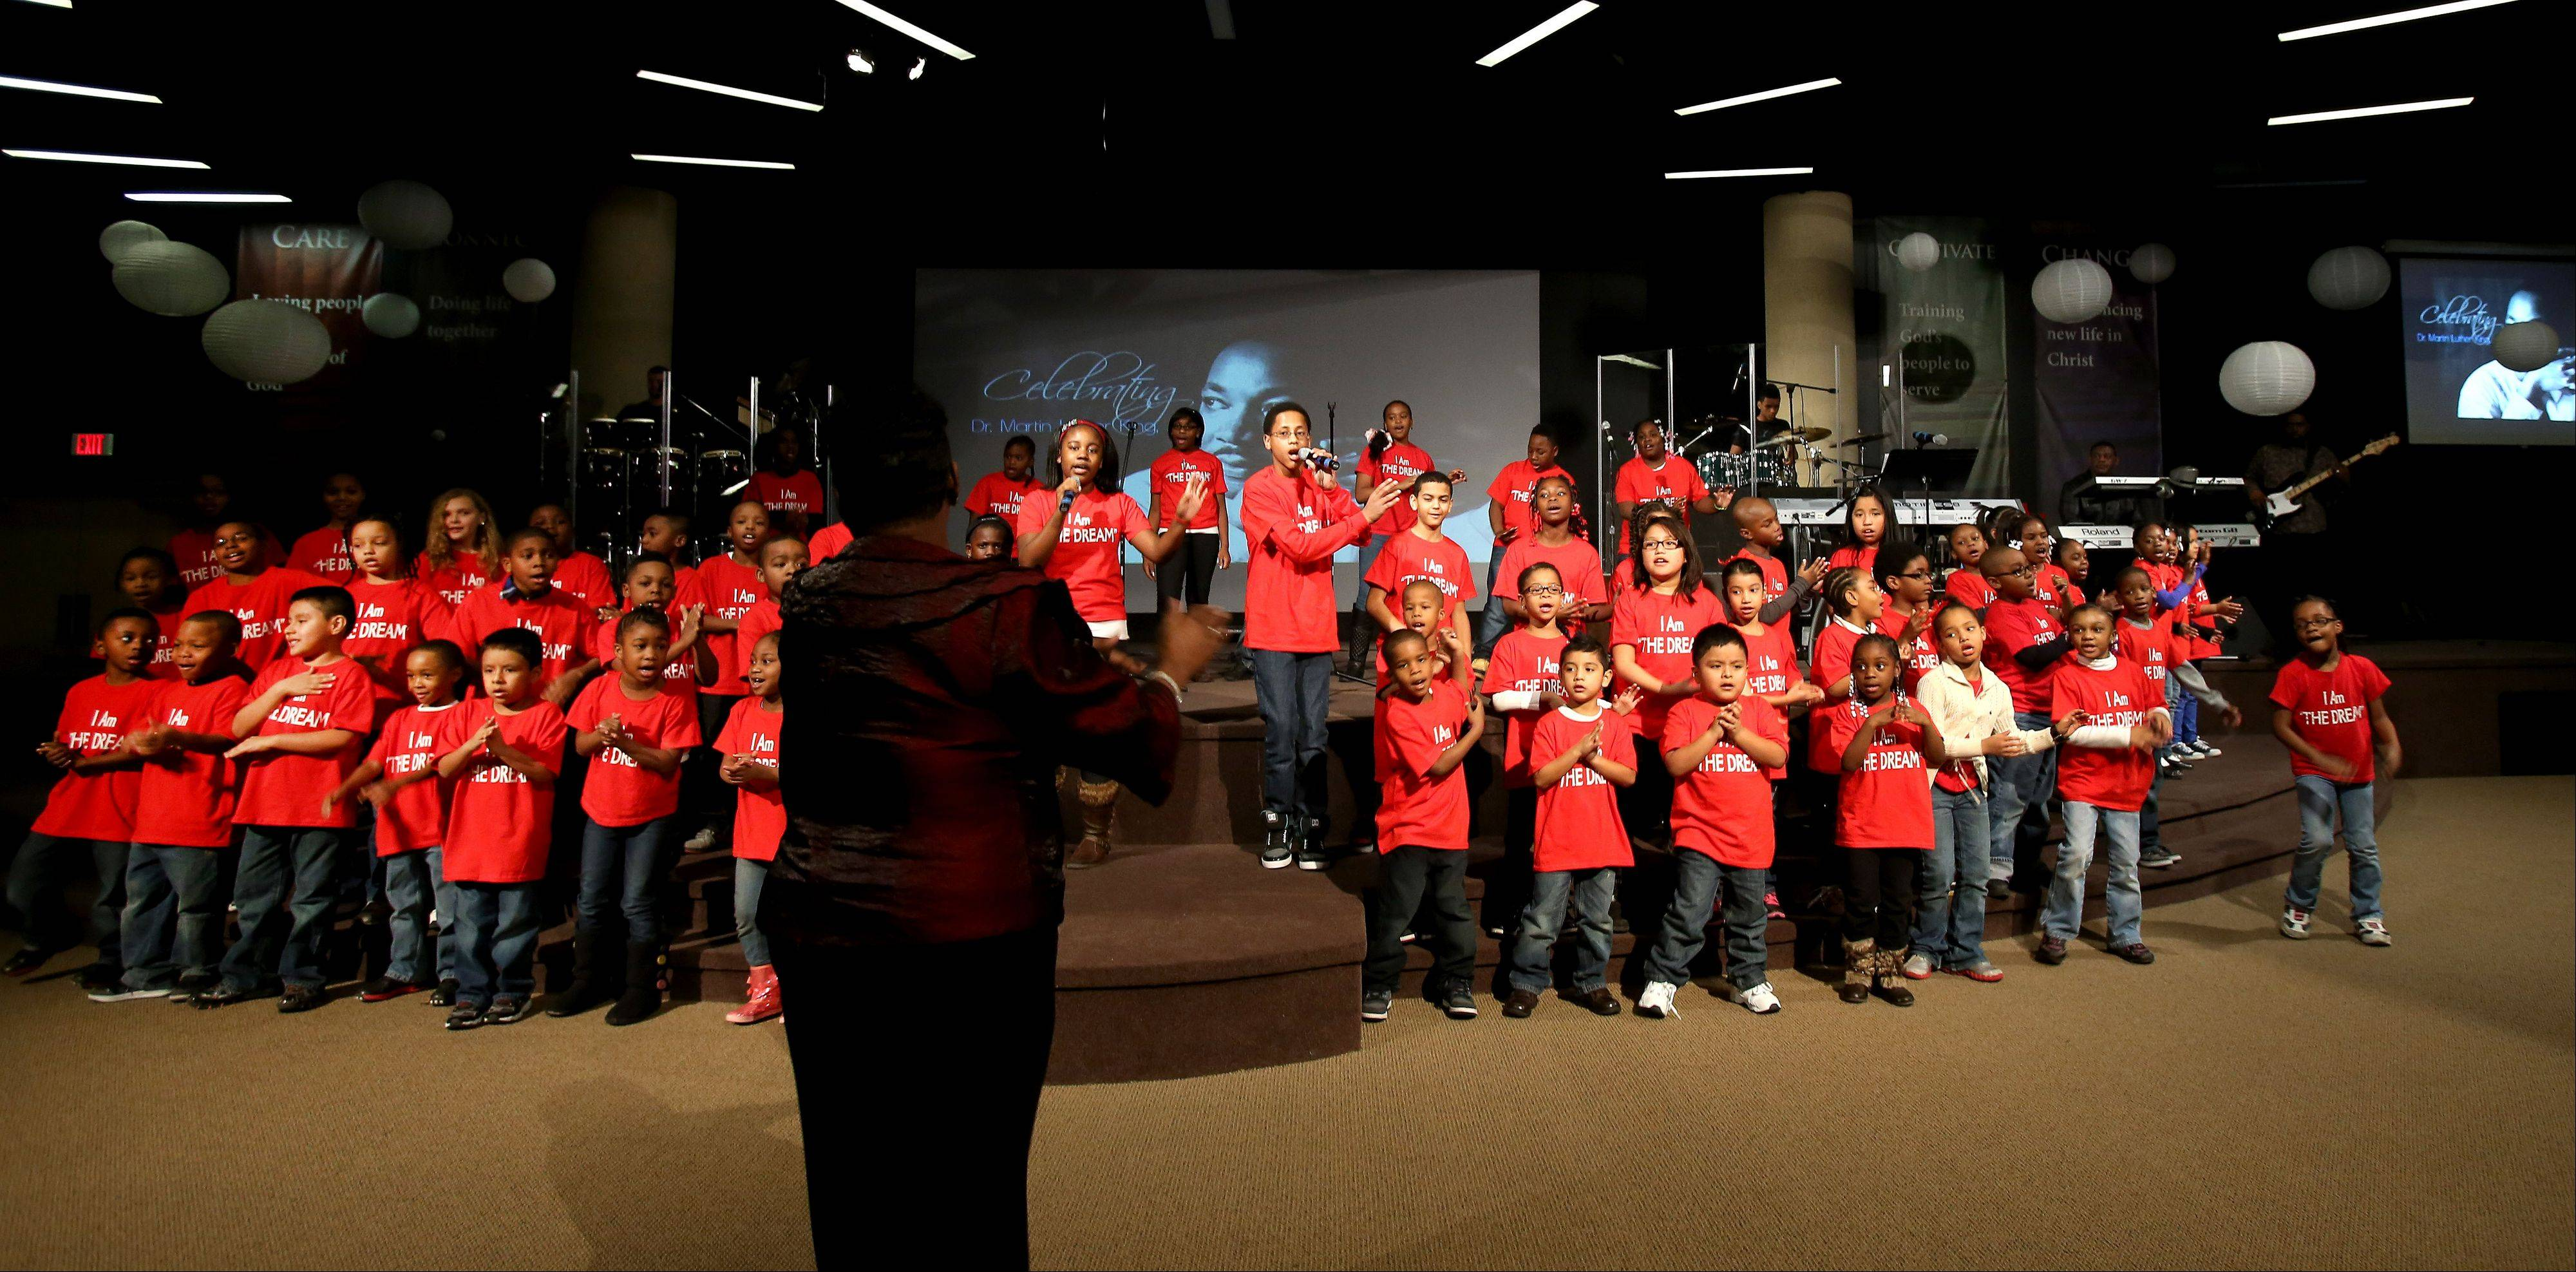 Children with the Carol Stream Community Choir perform Monday at the Martin Luther King Jr. Day celebration at the Wheaton Christian Center in Carol Stream.